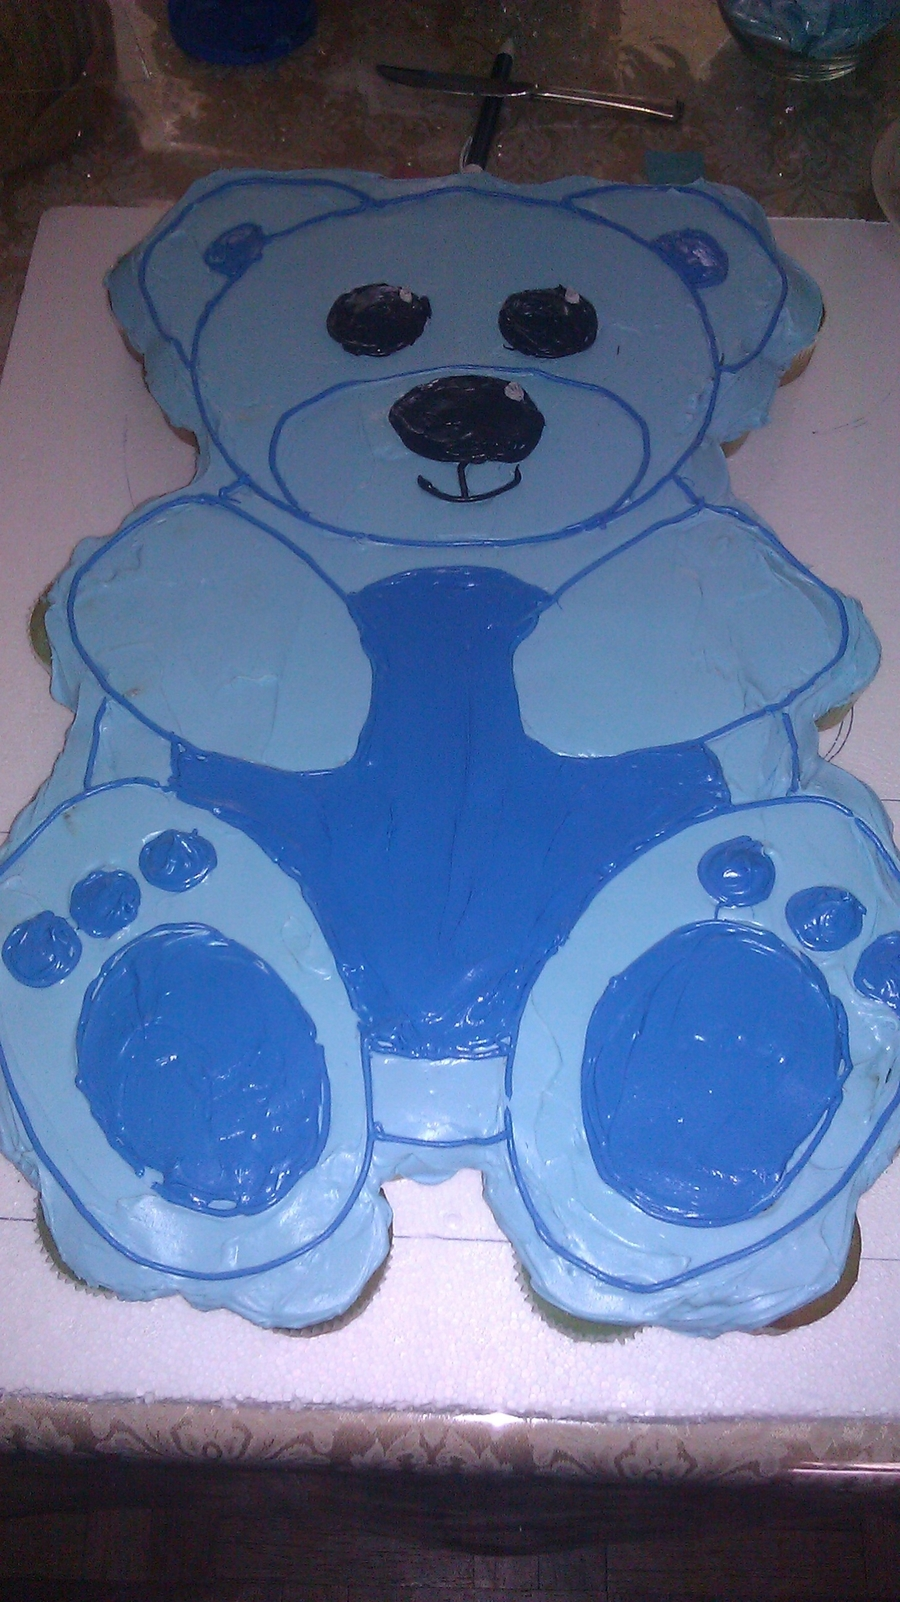 Teddy Bear Cupcake Cake - 2011 on Cake Central